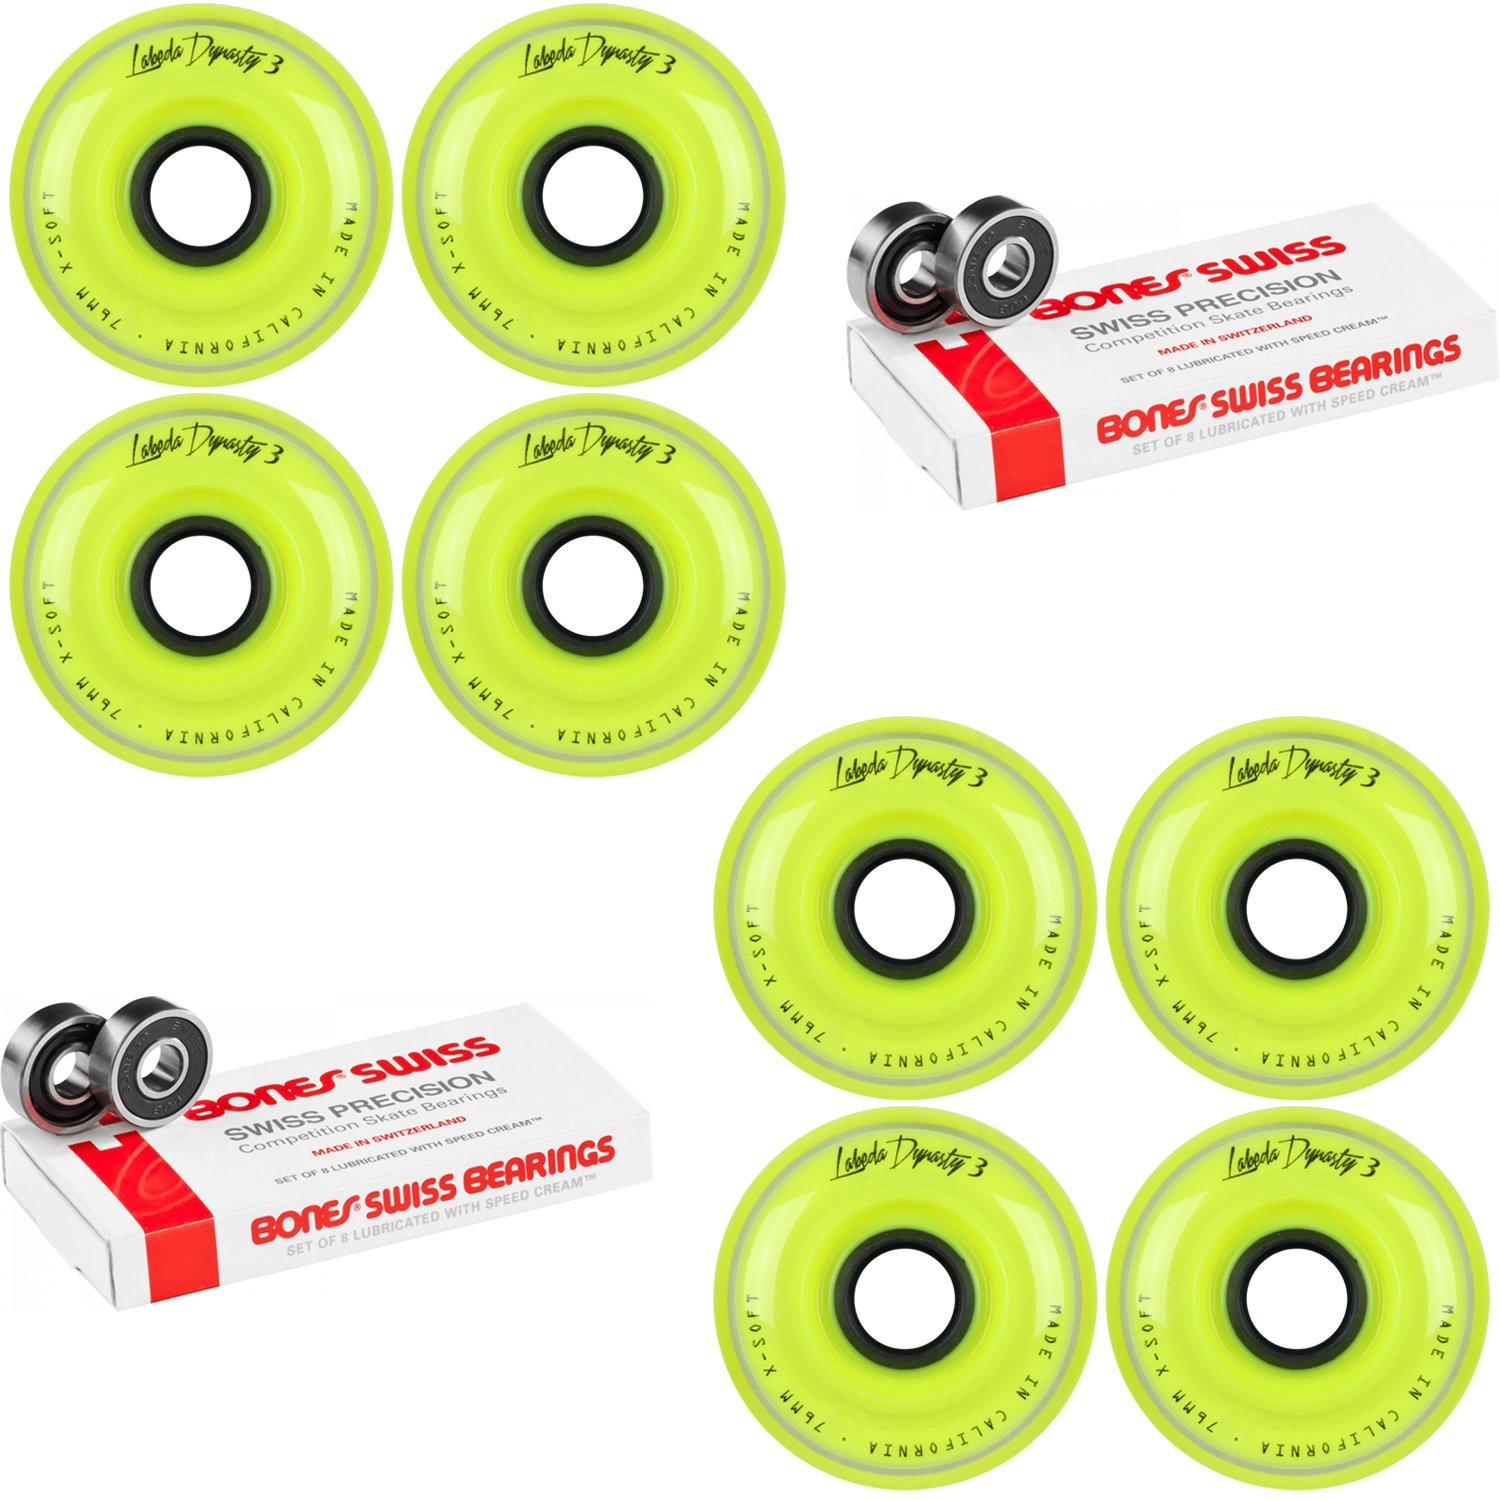 Labeda WHEELS Roller Hockey DYNASTY 3 76mm X-SOFT Yellow 8-Pack Bones Swiss by Labeda